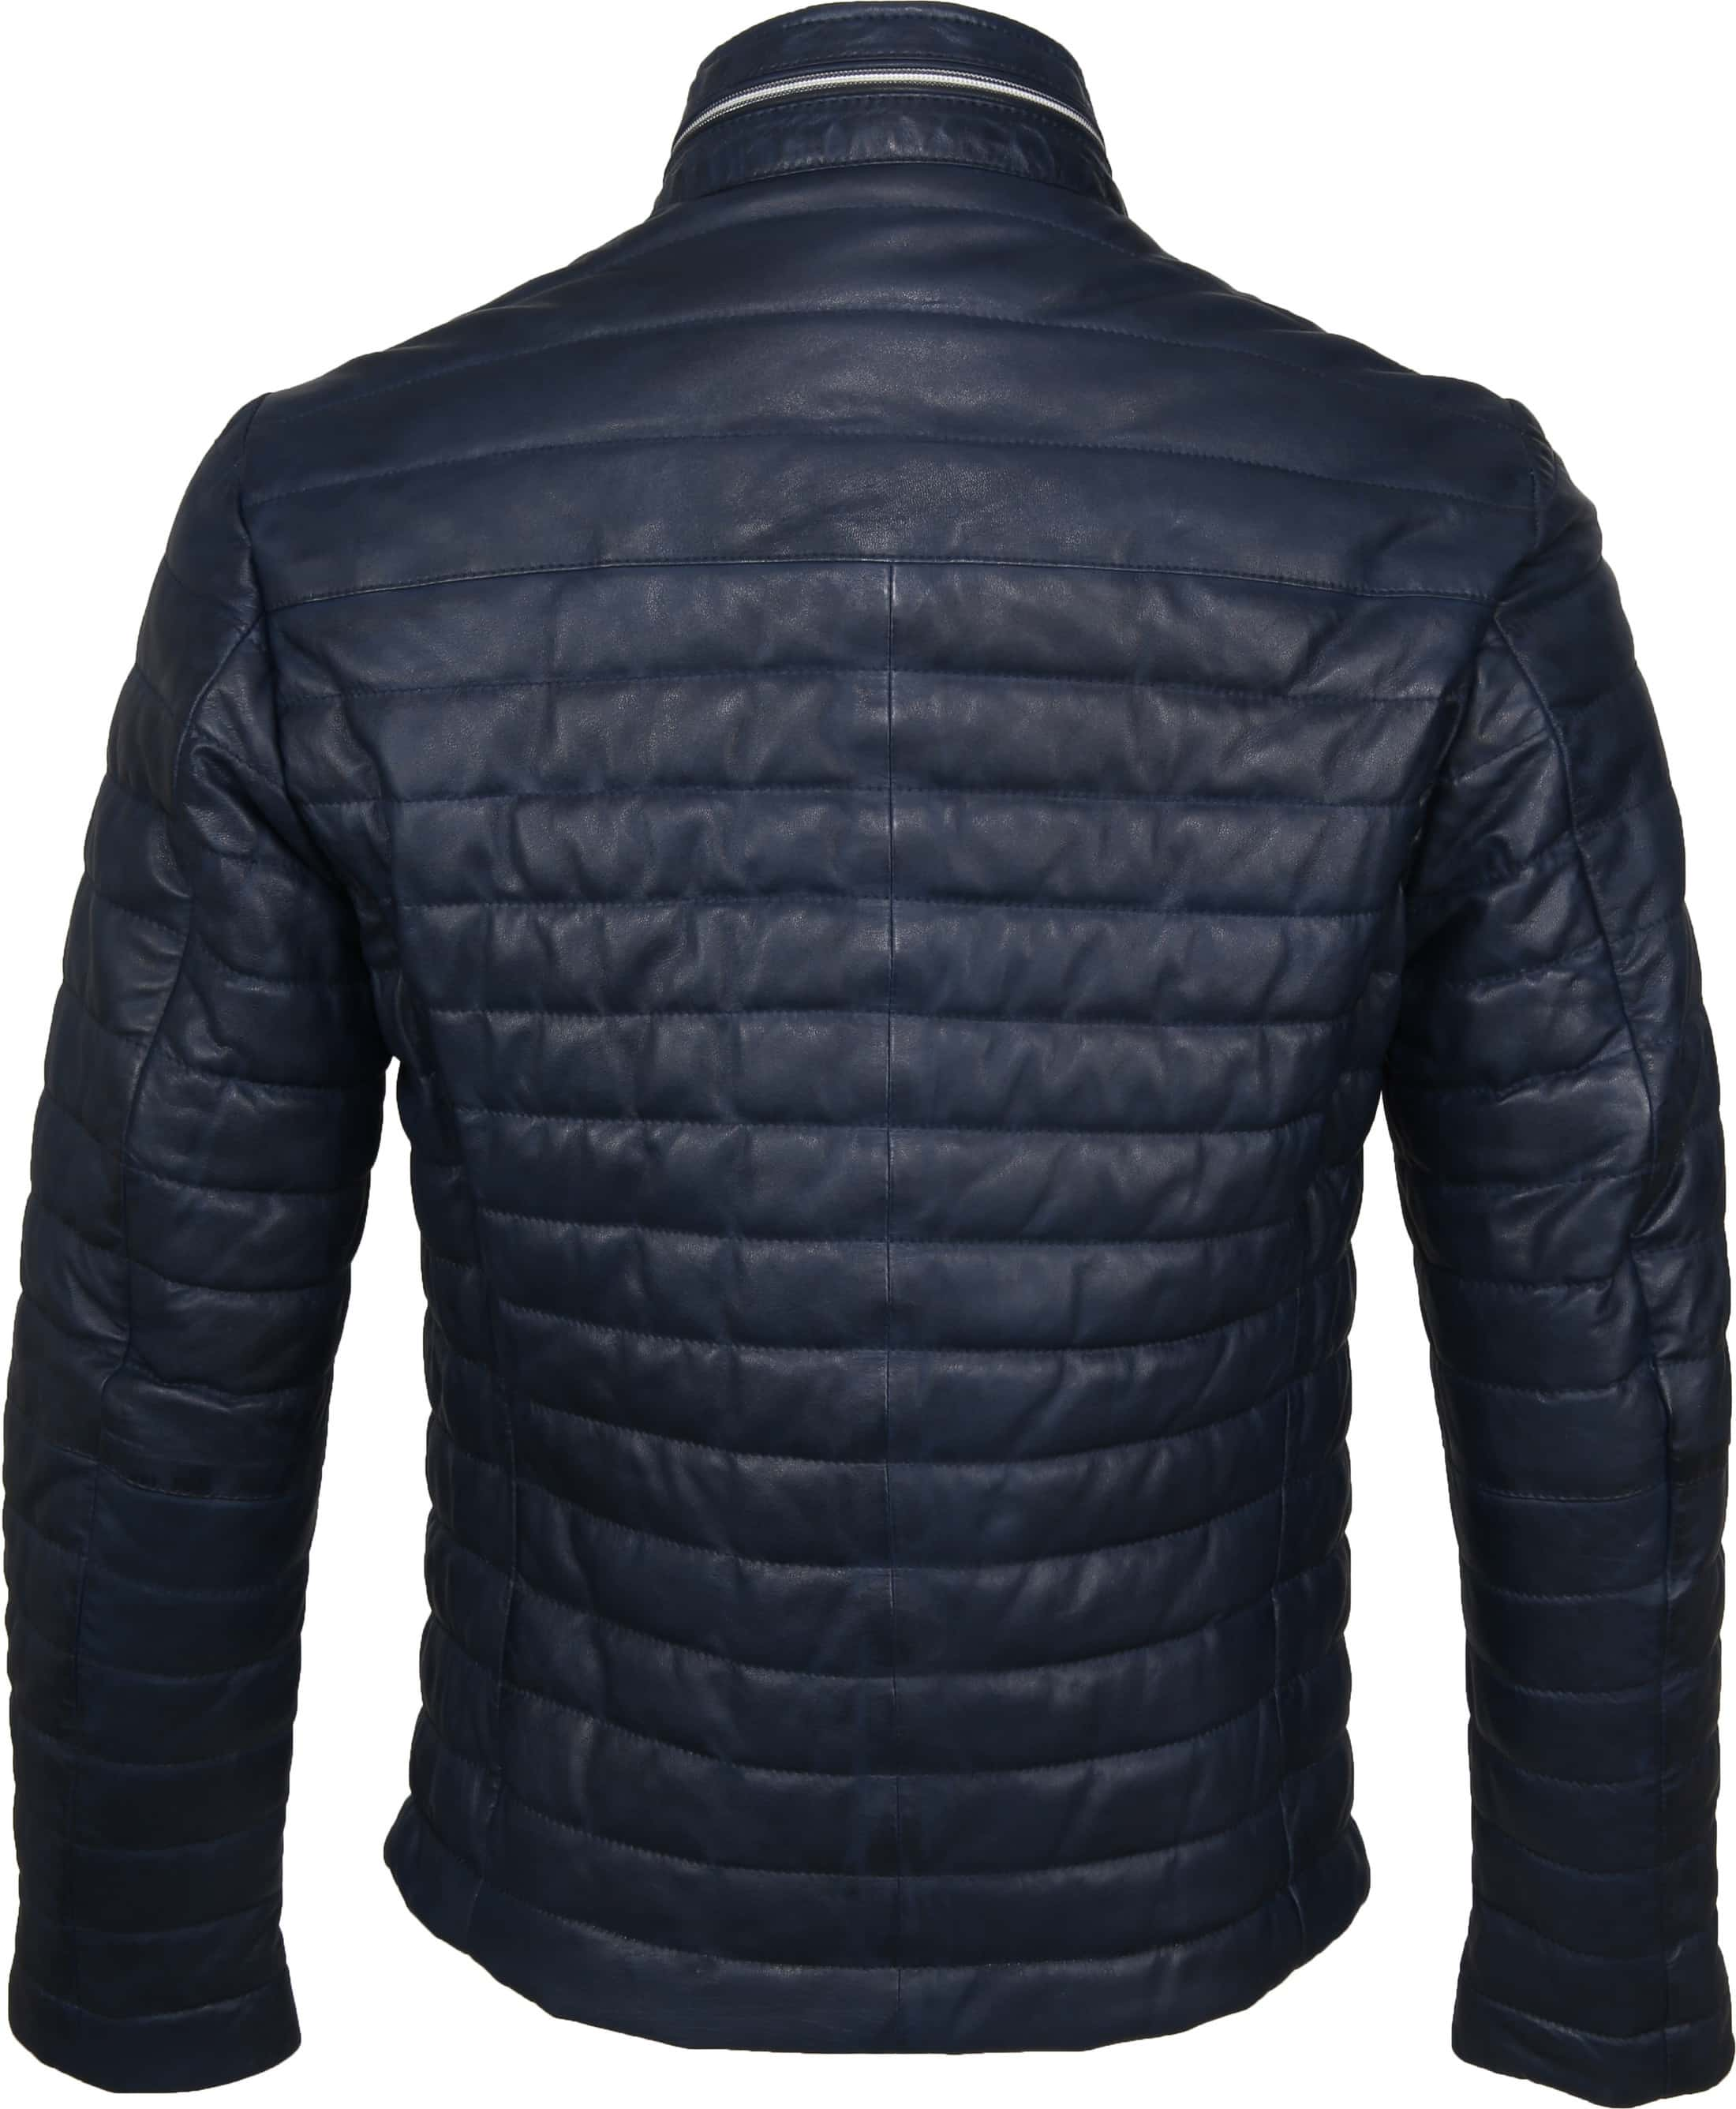 Milestone Tereno Leather Jacket Indigo foto 5